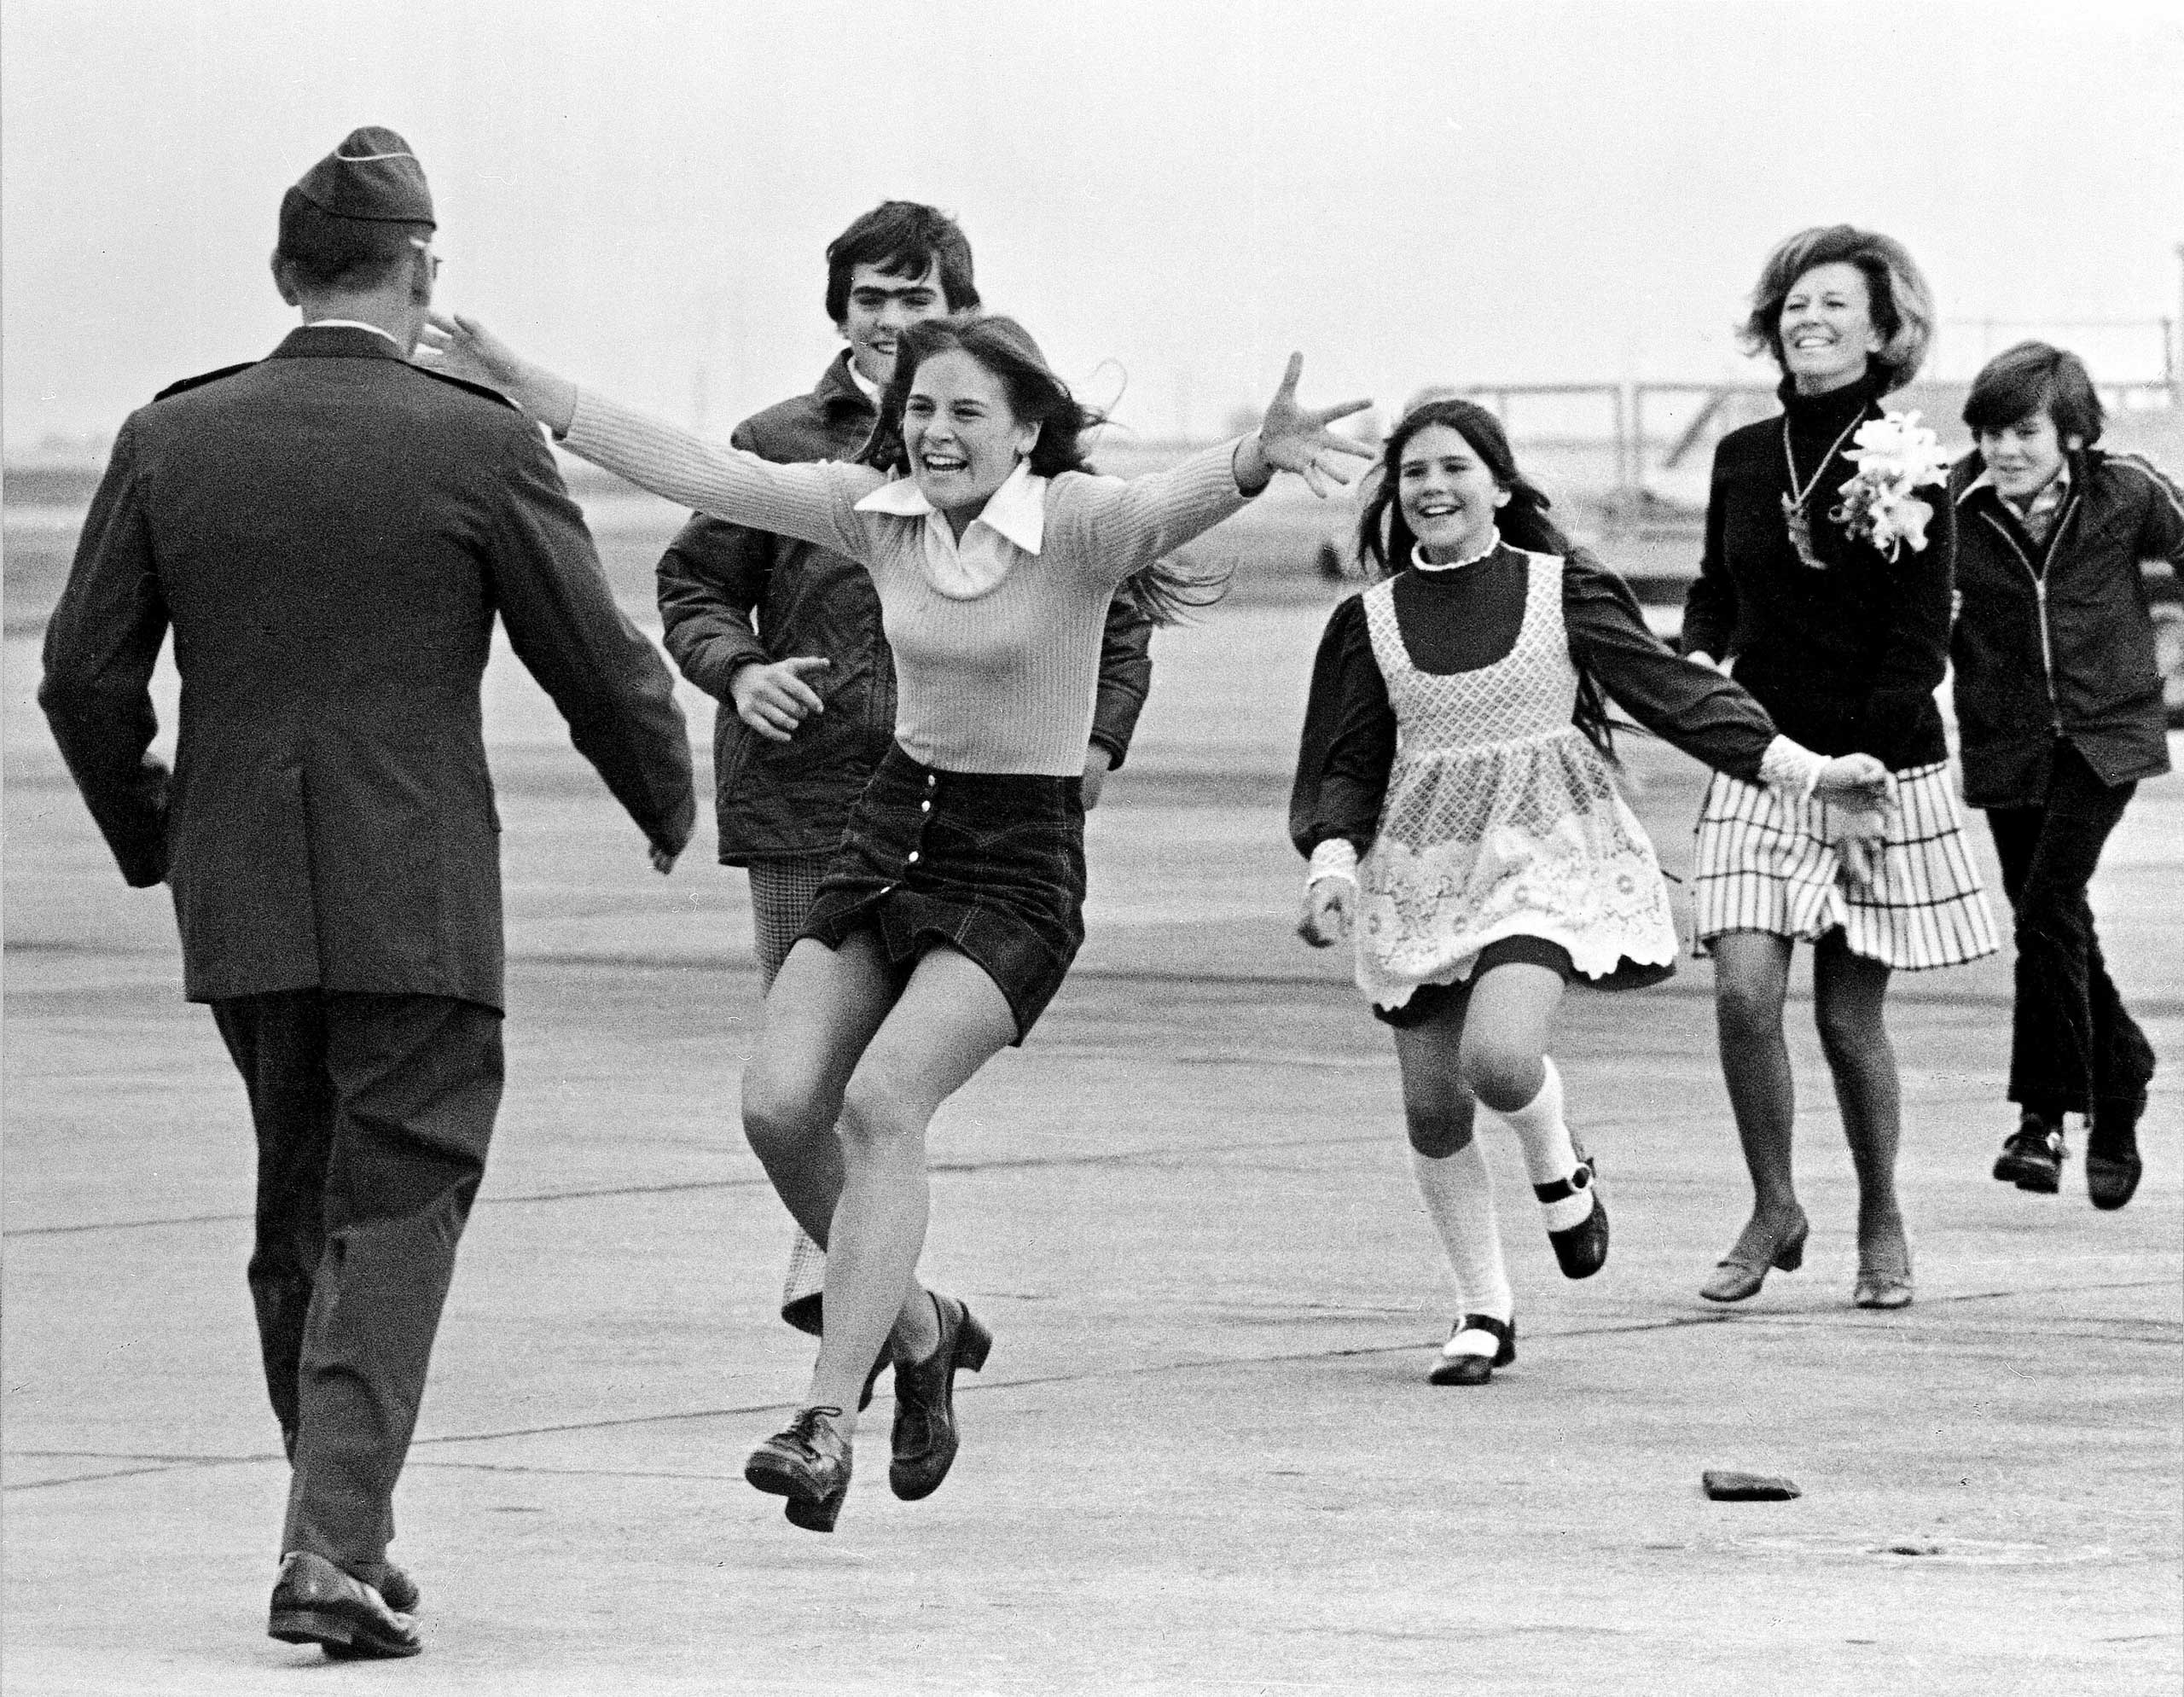 Released prisoner of war Lt. Col. Robert L. Stirm is greeted by his family at Travis Air Force Base in Fairfield, Calif., as he returns home from the Vietnam War on March 17, 1973.